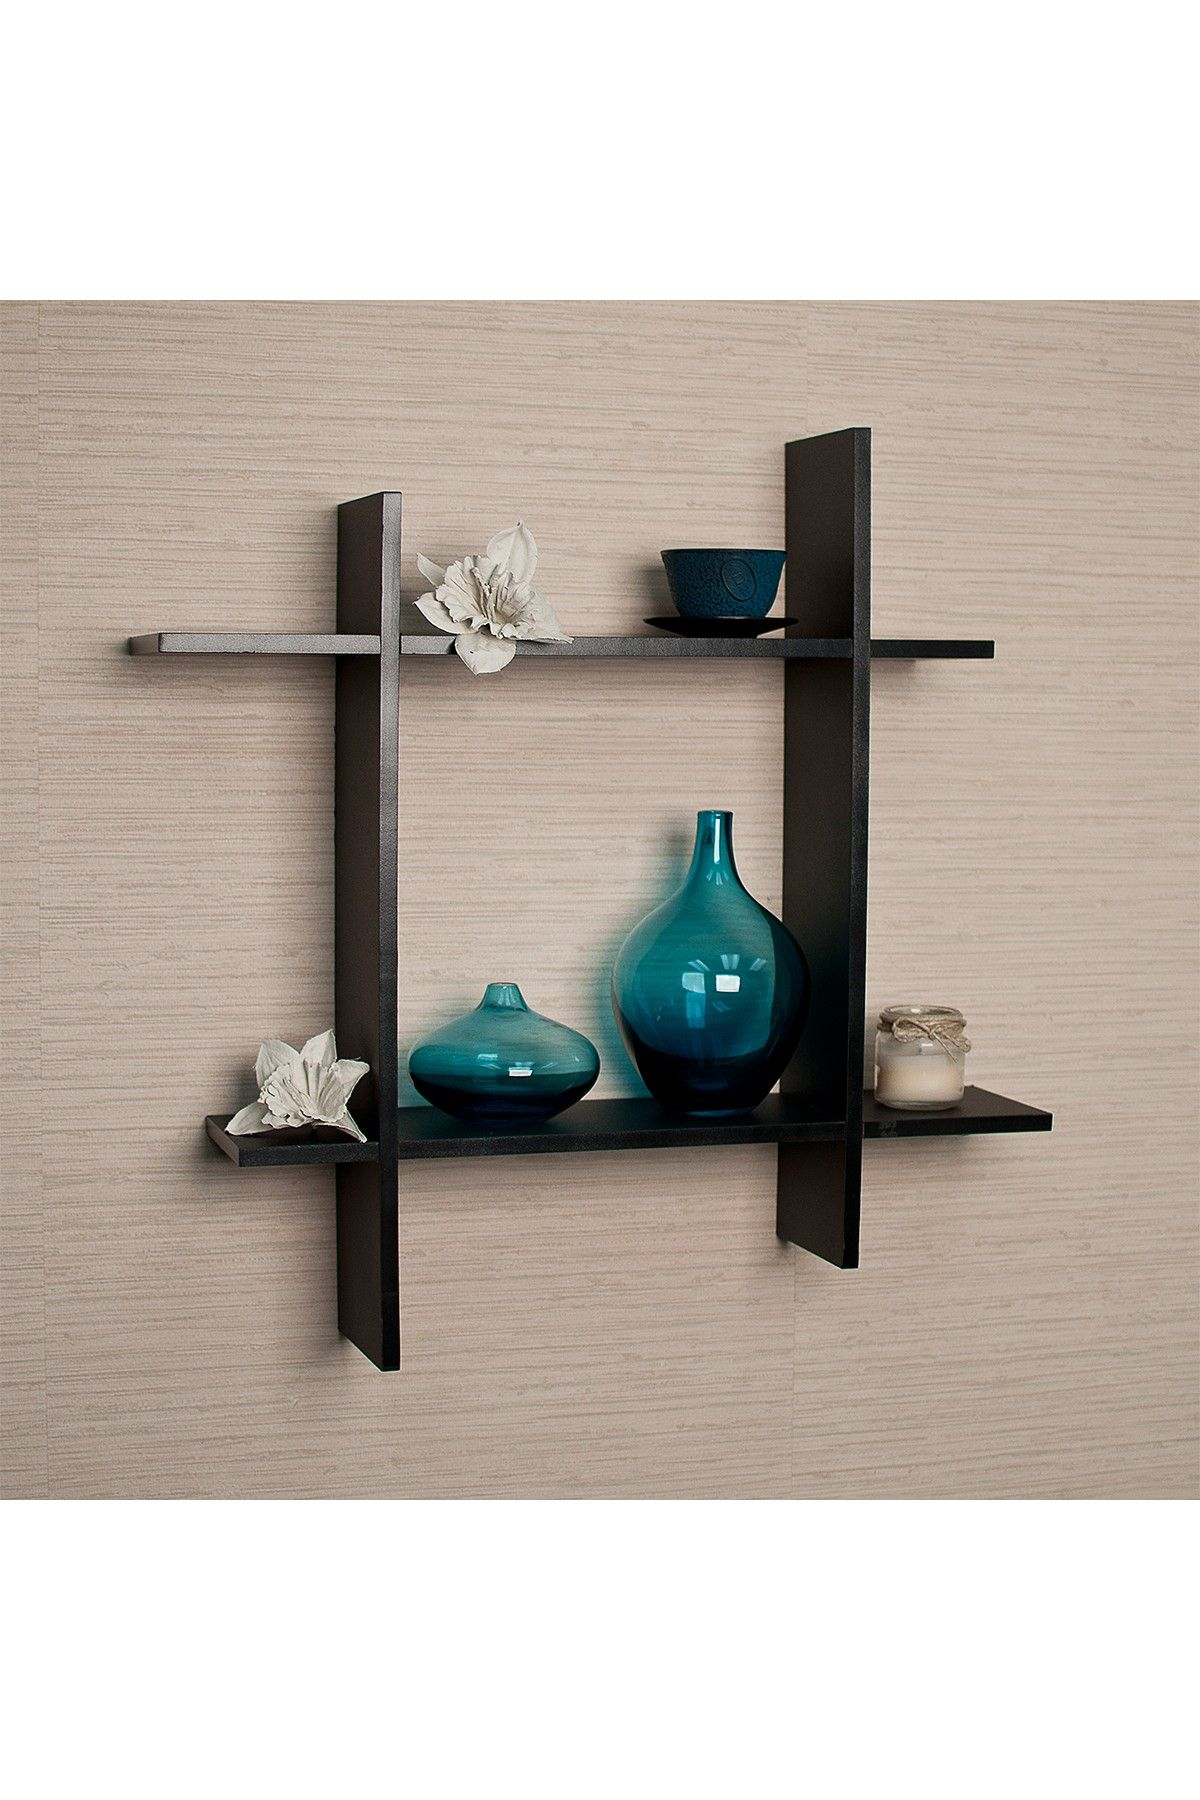 Asymmetric Square Floating Wall Shelf That I Think Could